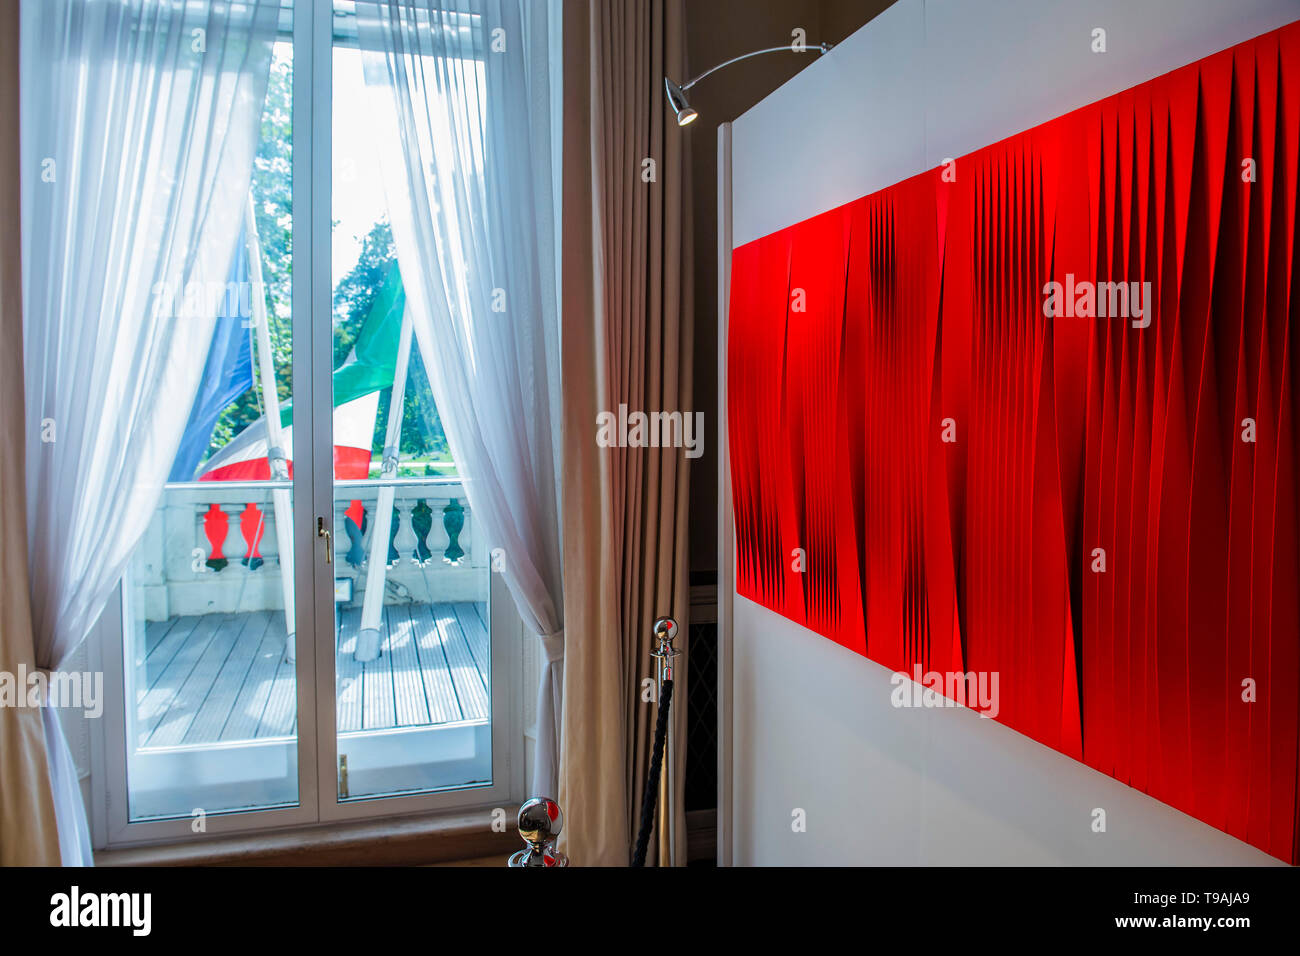 London, UK. 16th May 2019. Pino Manos, London, UK. 17th May 2019. Sincronicità rosso fluo vibrante, 2018 - The launch party for Spaziale! at Opera Gallery London at the Italian Embassy.The exhibition includes 40 iconic canvases by Lucio Fontana, Agostino Bonalumi and Enrico Castellani among others. Credit: Guy Bell/Alamy Live News - Stock Image